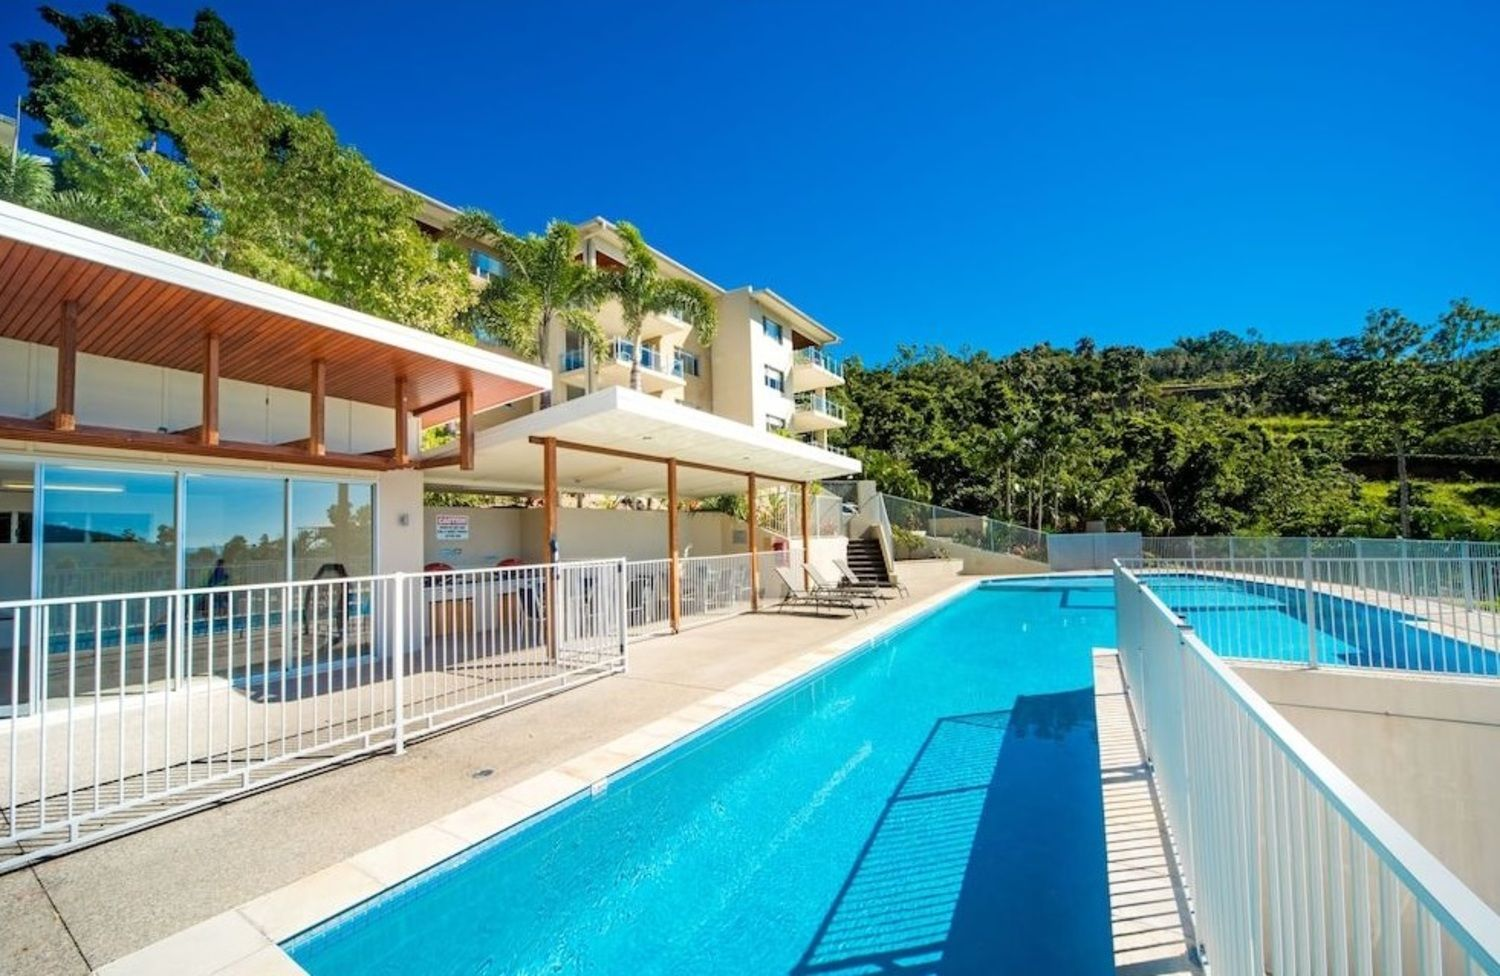 26/15 Flametree Court, Airlie Beach QLD 4802, Image 1